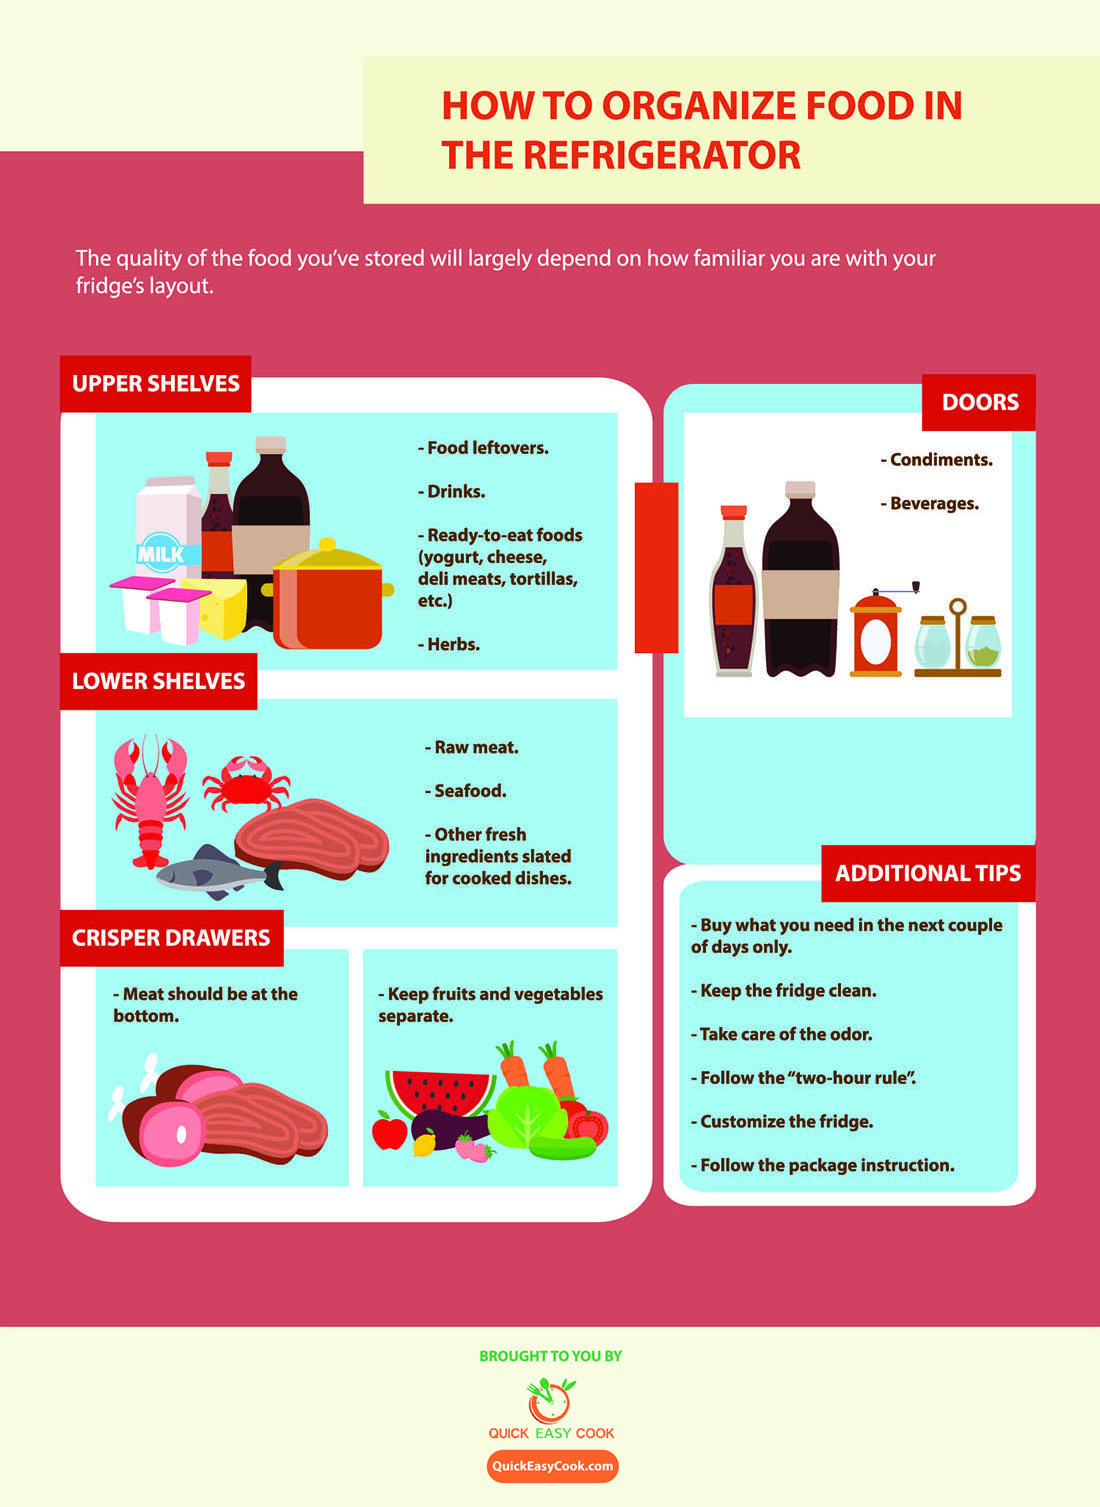 How To Organize Food In The Refrigerator (Infographic)